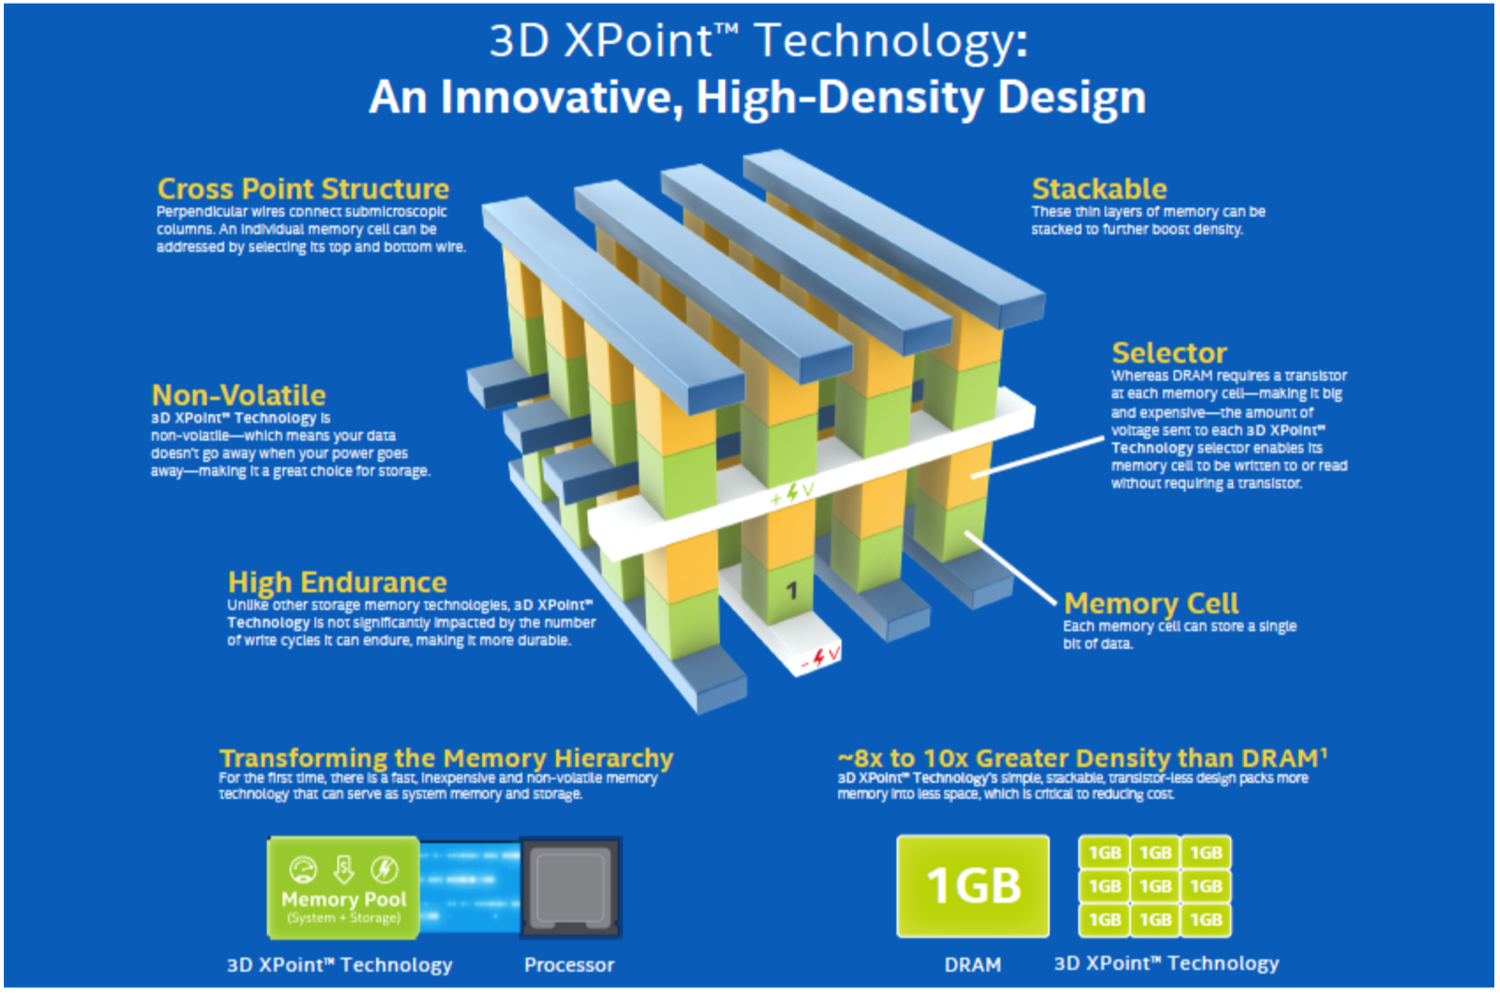 Intel and Micron take the Plunge with Non-volatile 3D XP - Wikibon